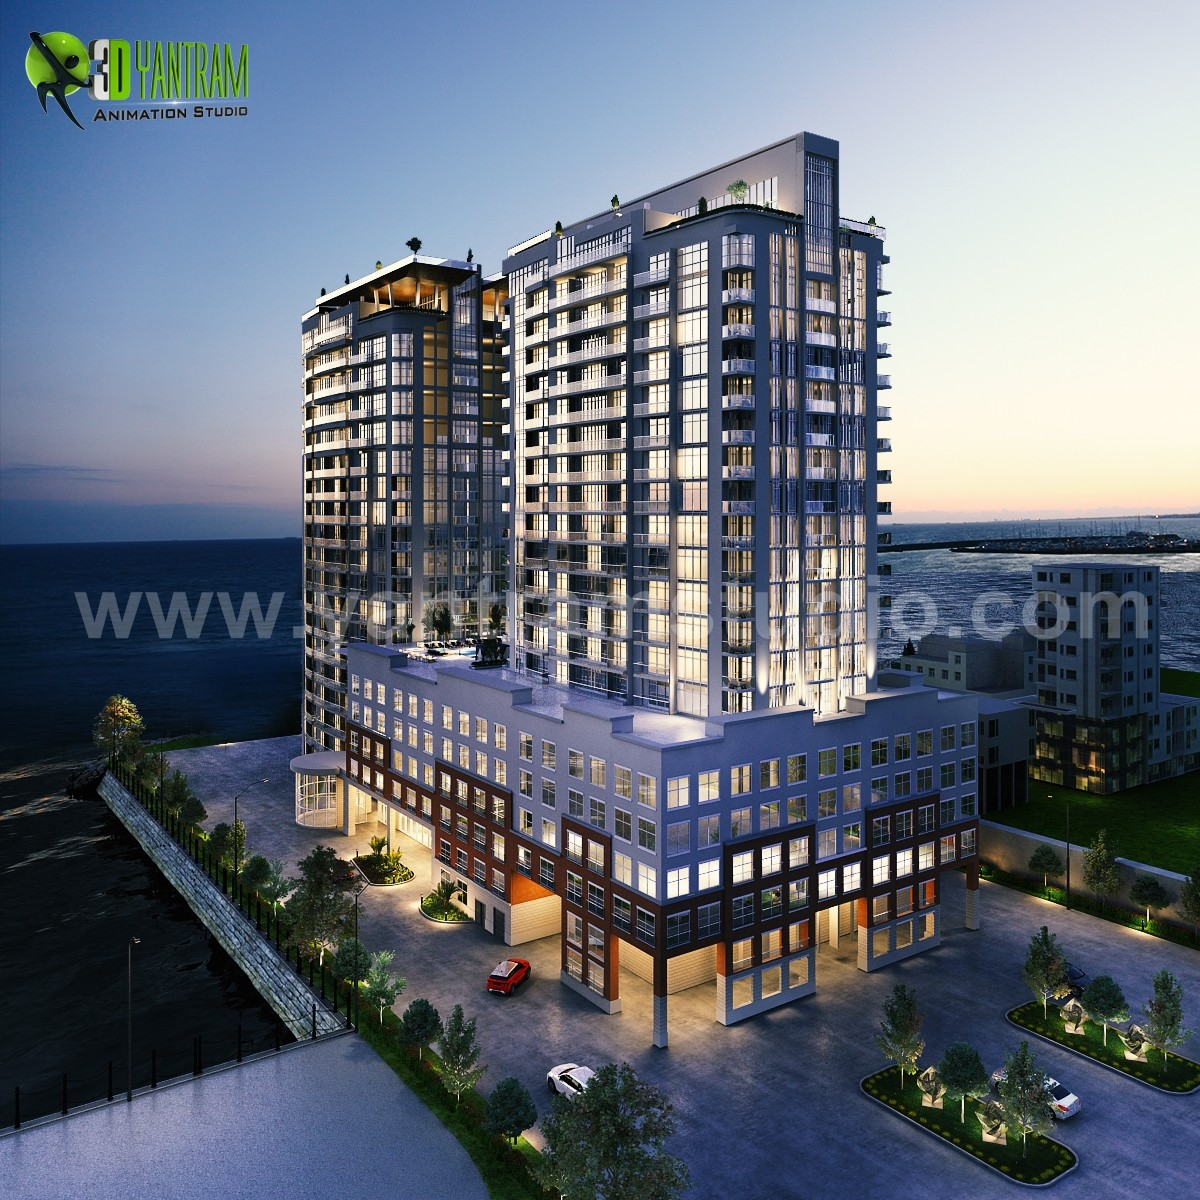 Exterior Of A New High Rise Luxury Building Developed By Yantram Architectural Design Studio